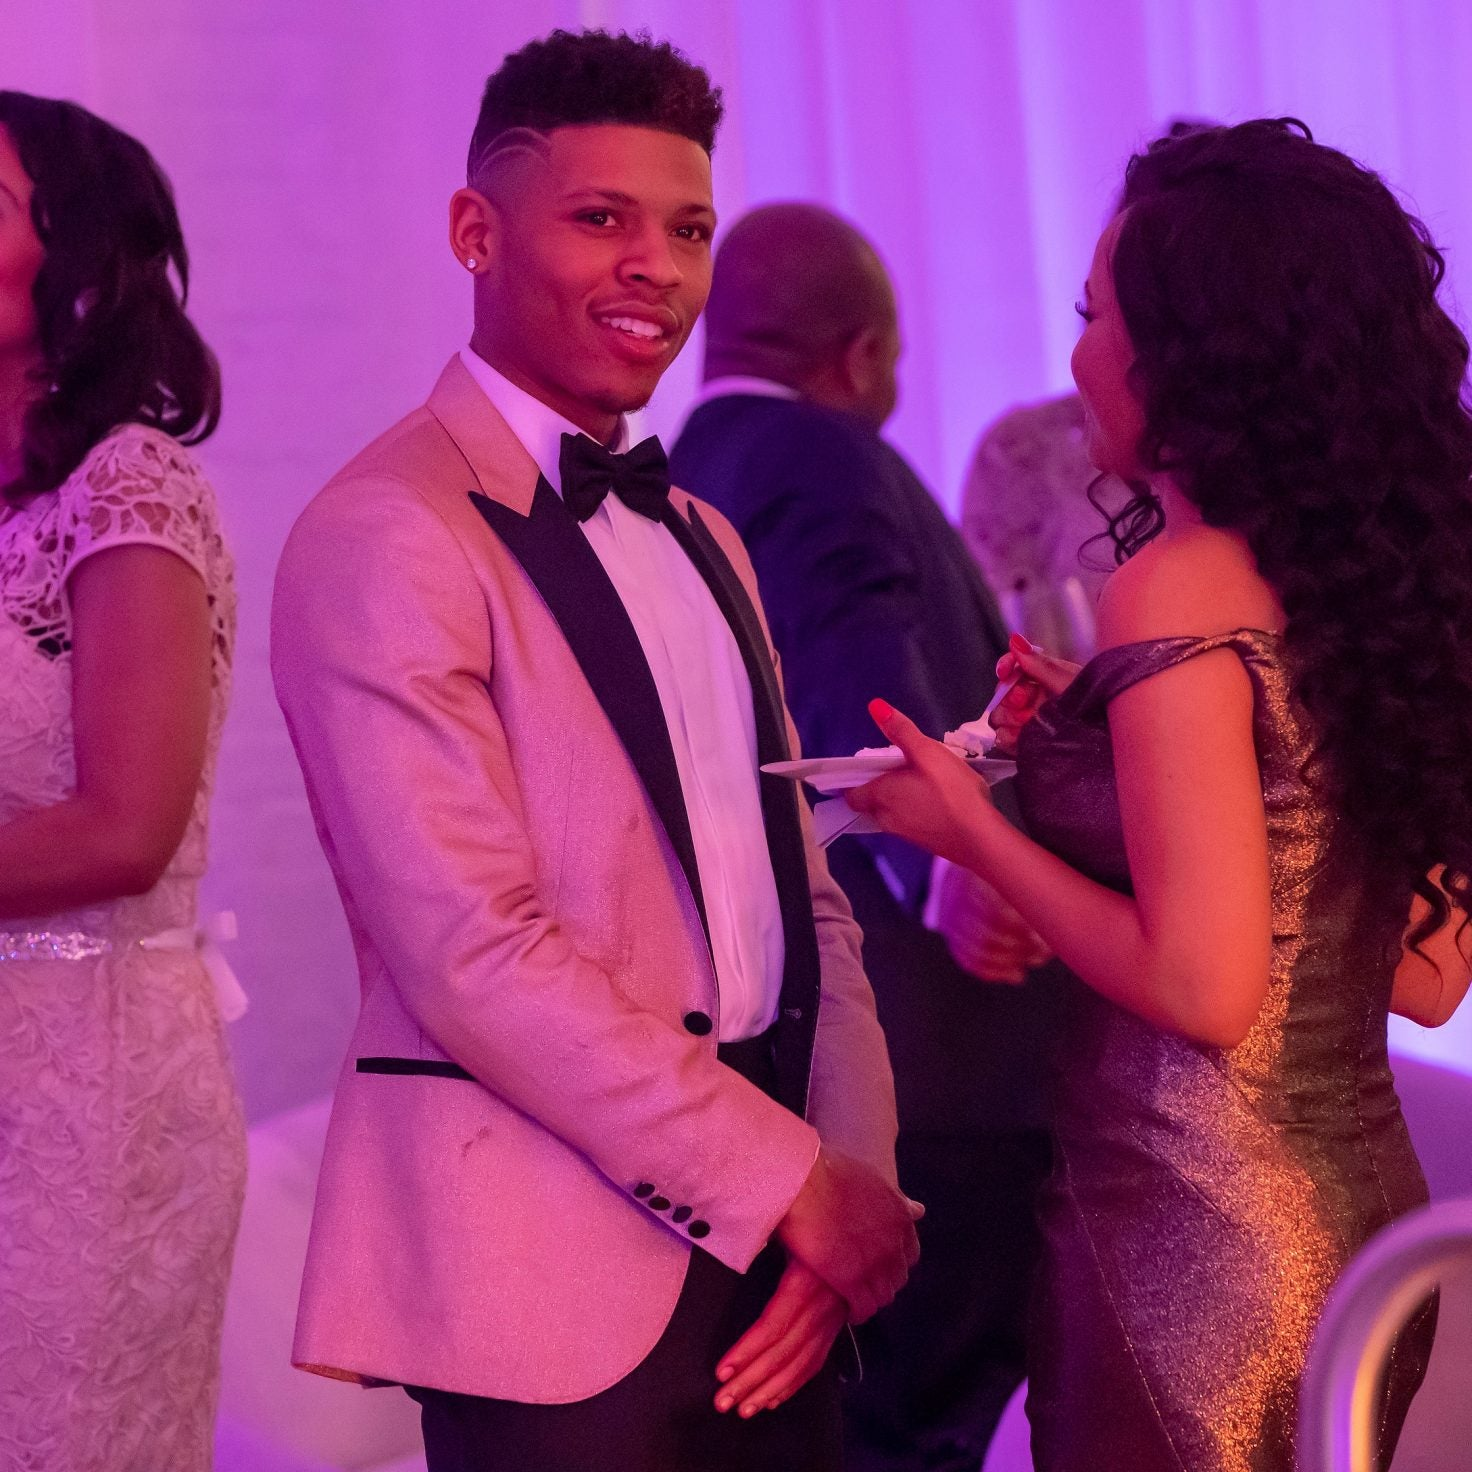 'Empire' Star Bryshere Gray Questioned Over 7-Eleven Food Fight